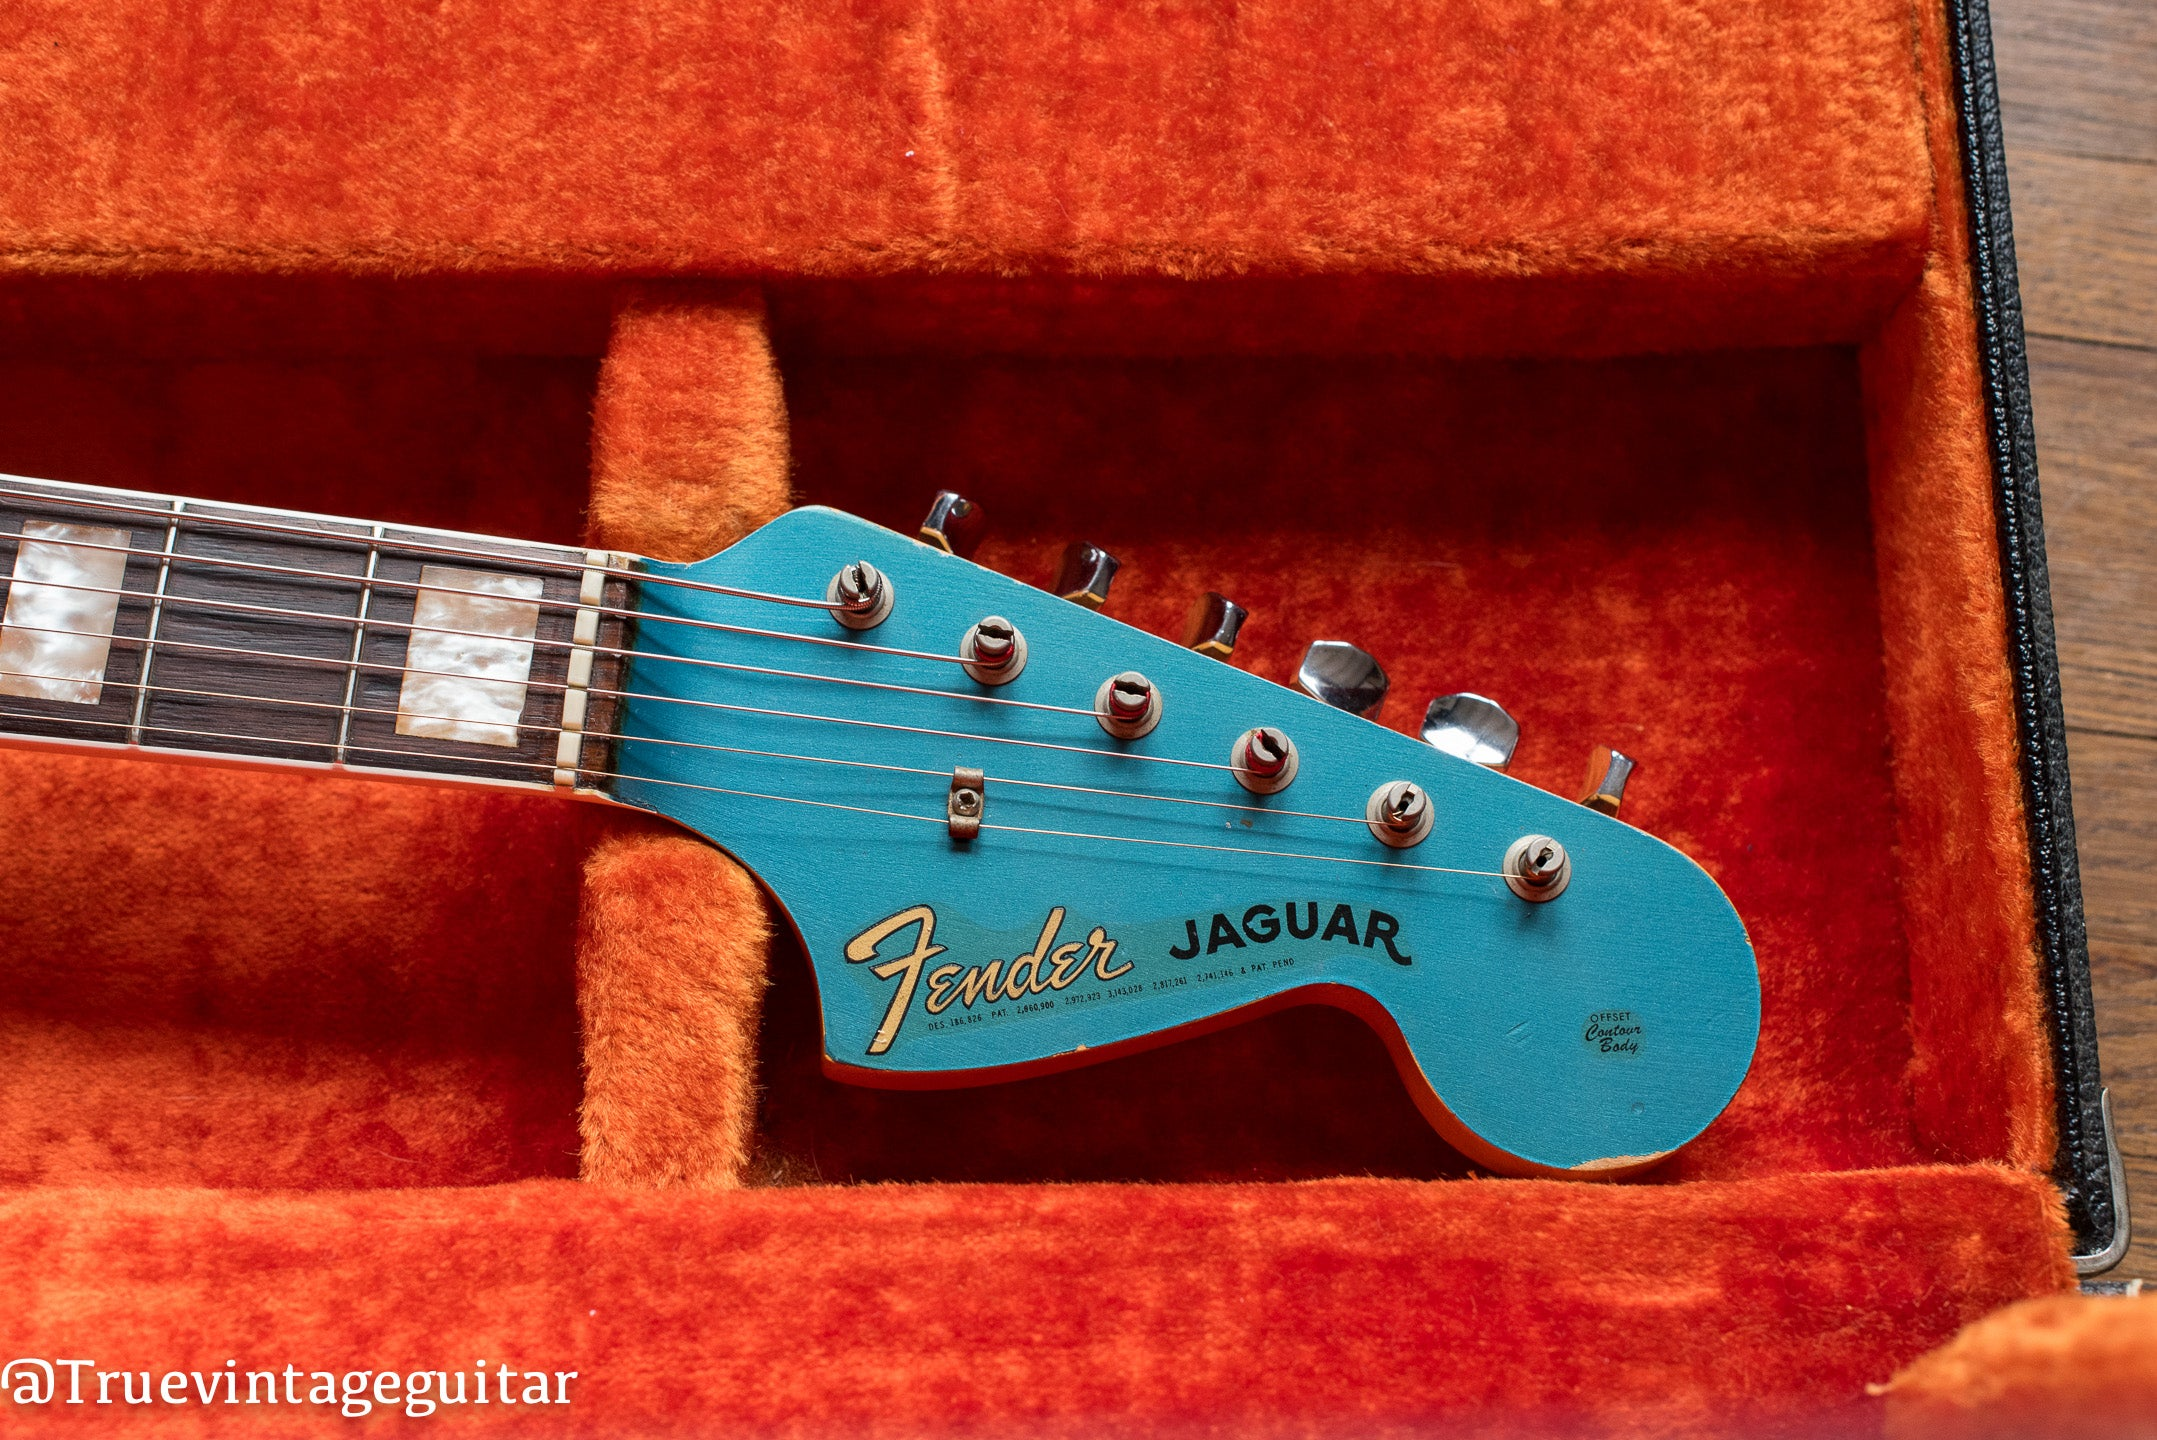 Sell vintage Fender guitar